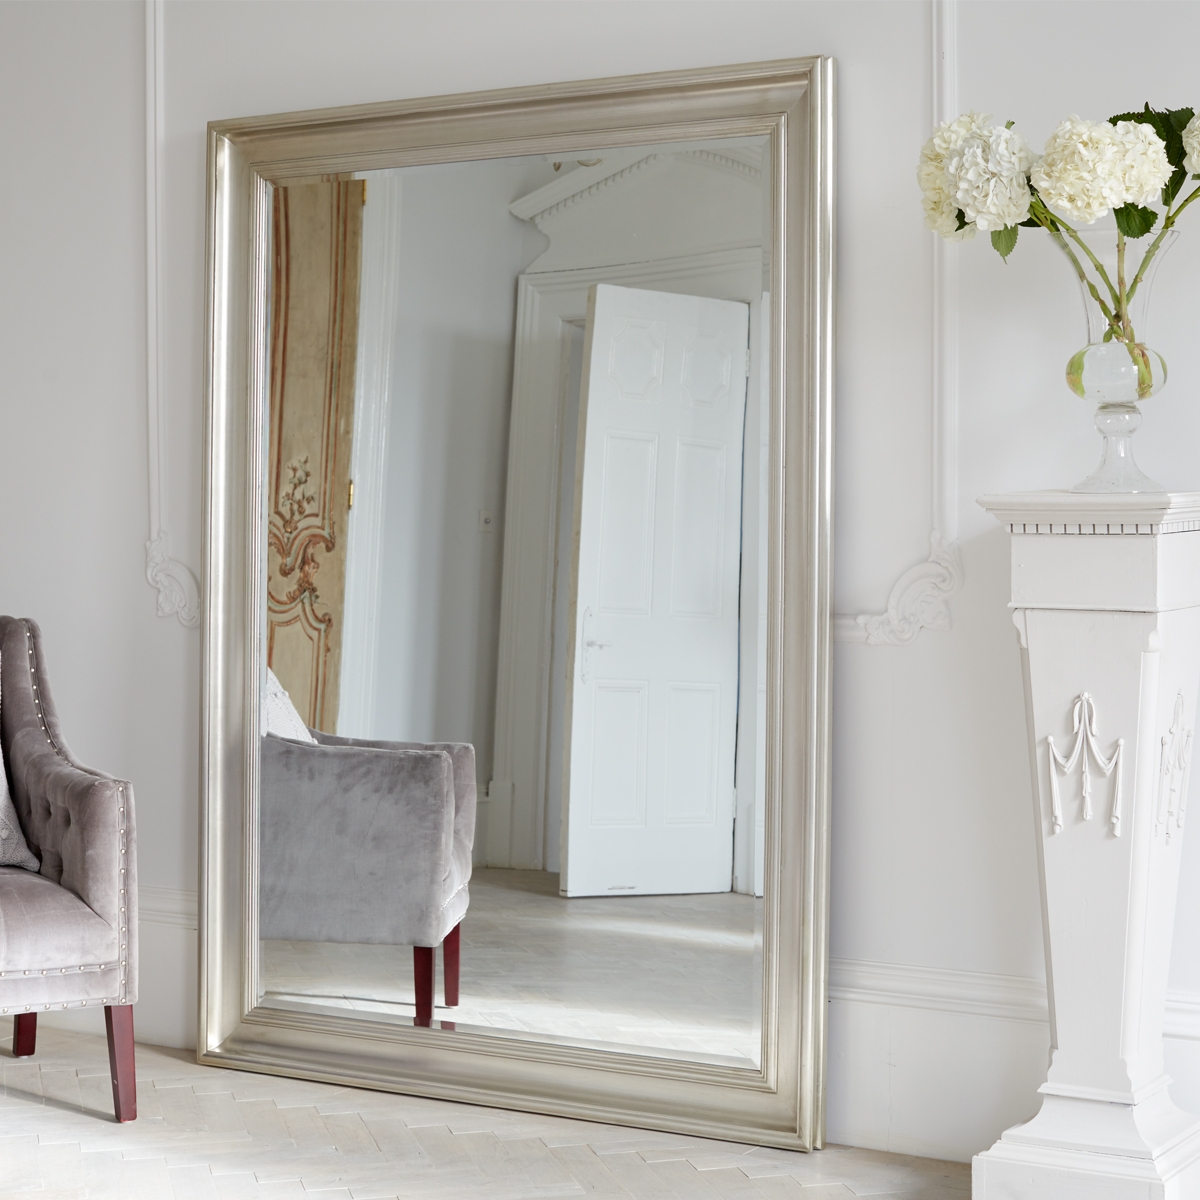 Wall Mirrors Full Length Mirrors Oversized Mirrors Vintage Intended For Vintage Stand Up Mirror (Image 15 of 15)